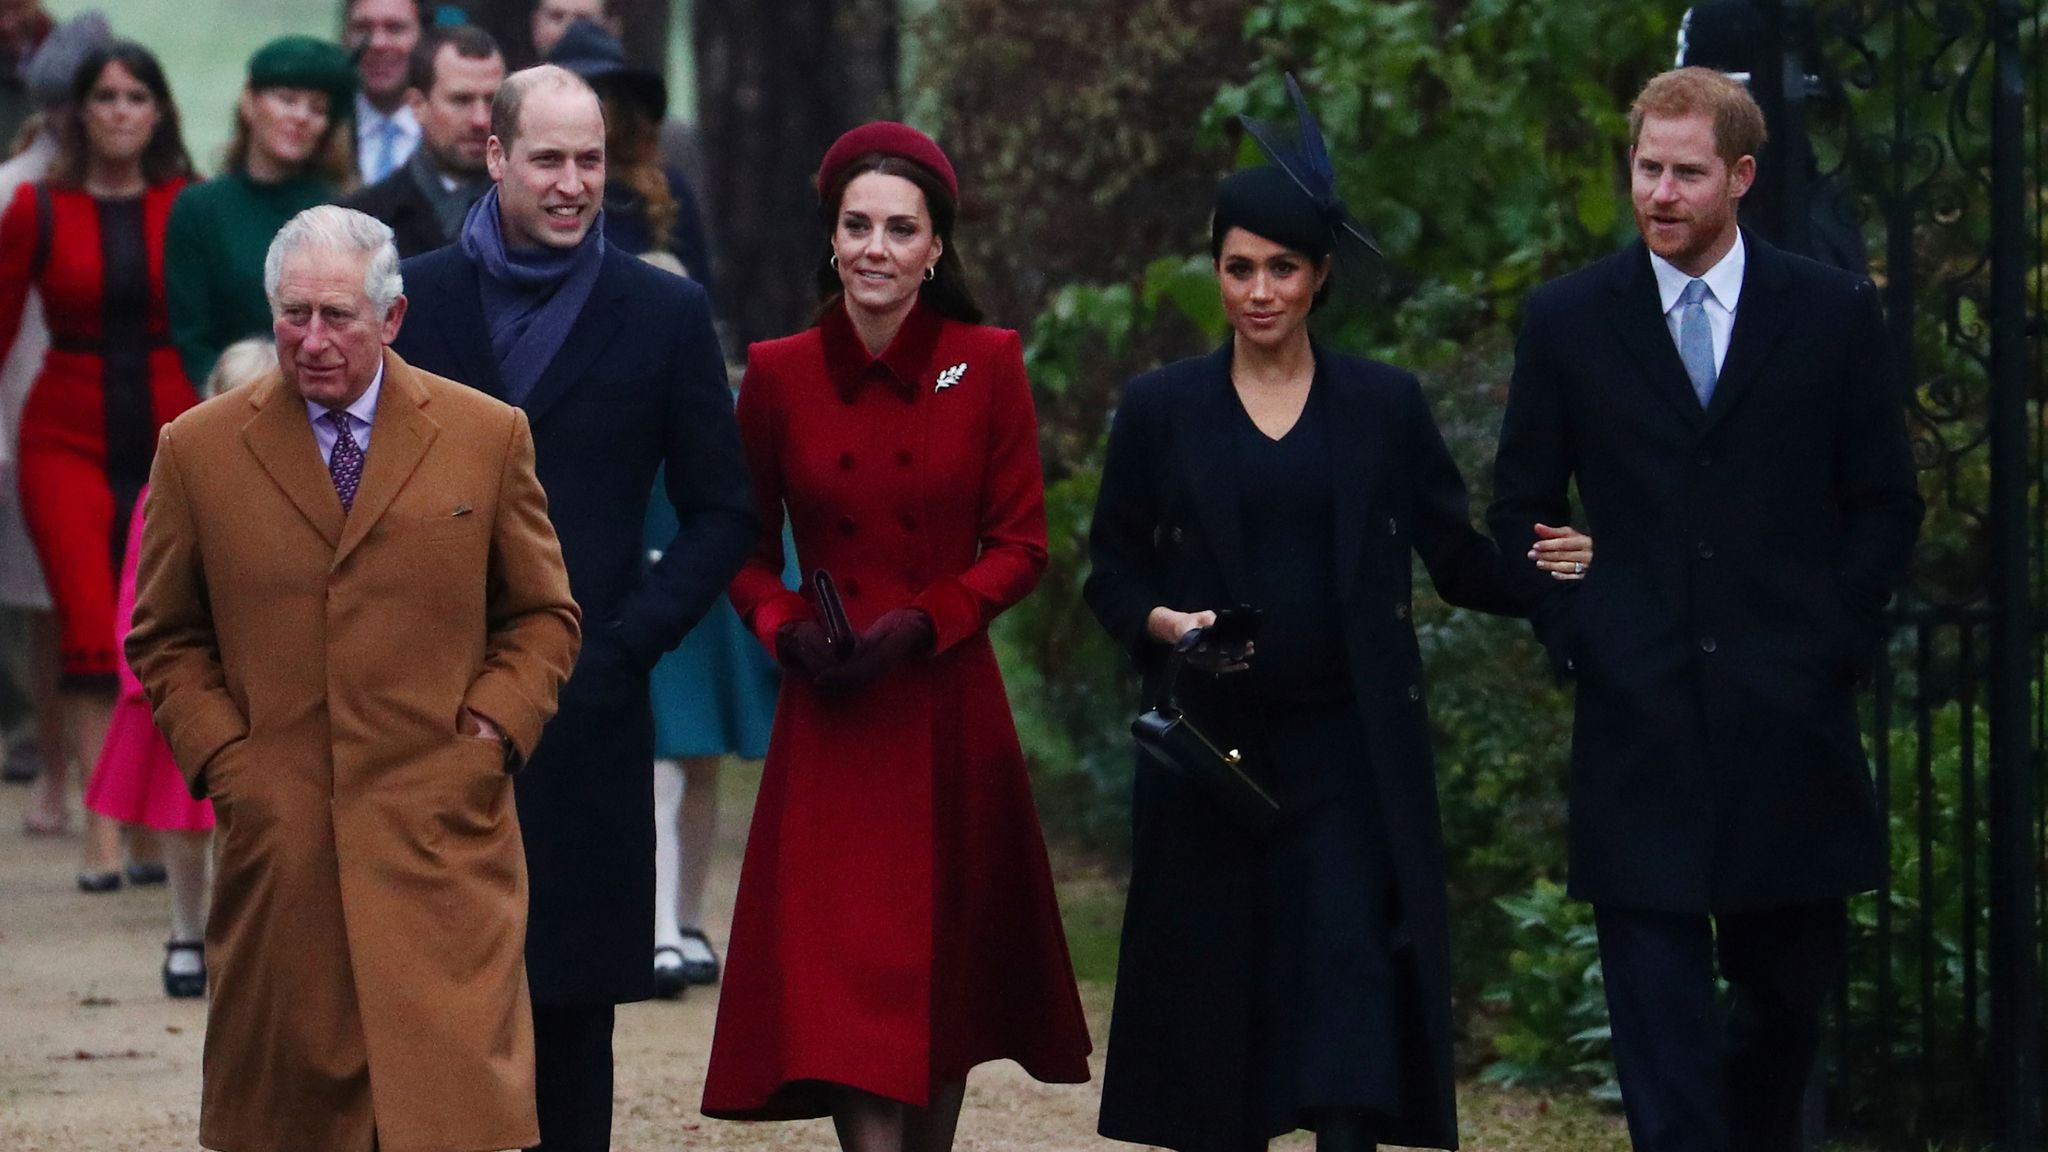 The Duke and Duchess of Cambridge are claimed to have a tense relationship with the Duke and Duchess of Sussex